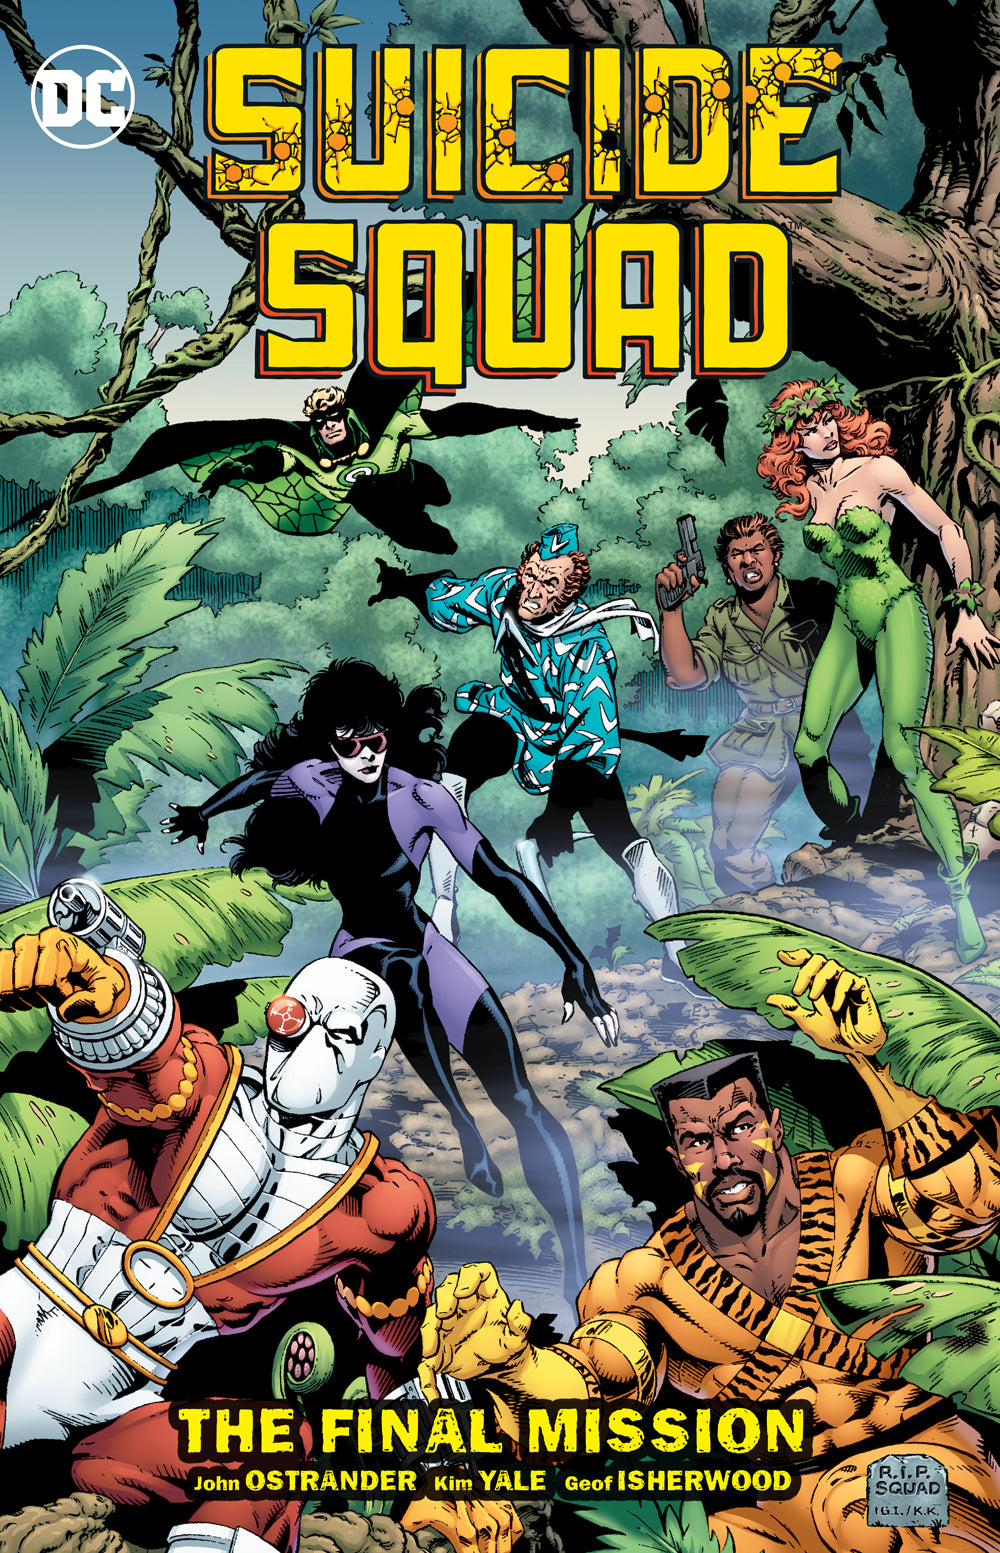 SUICIDE SQUAD TP VOL 08 THE FINAL MISSION